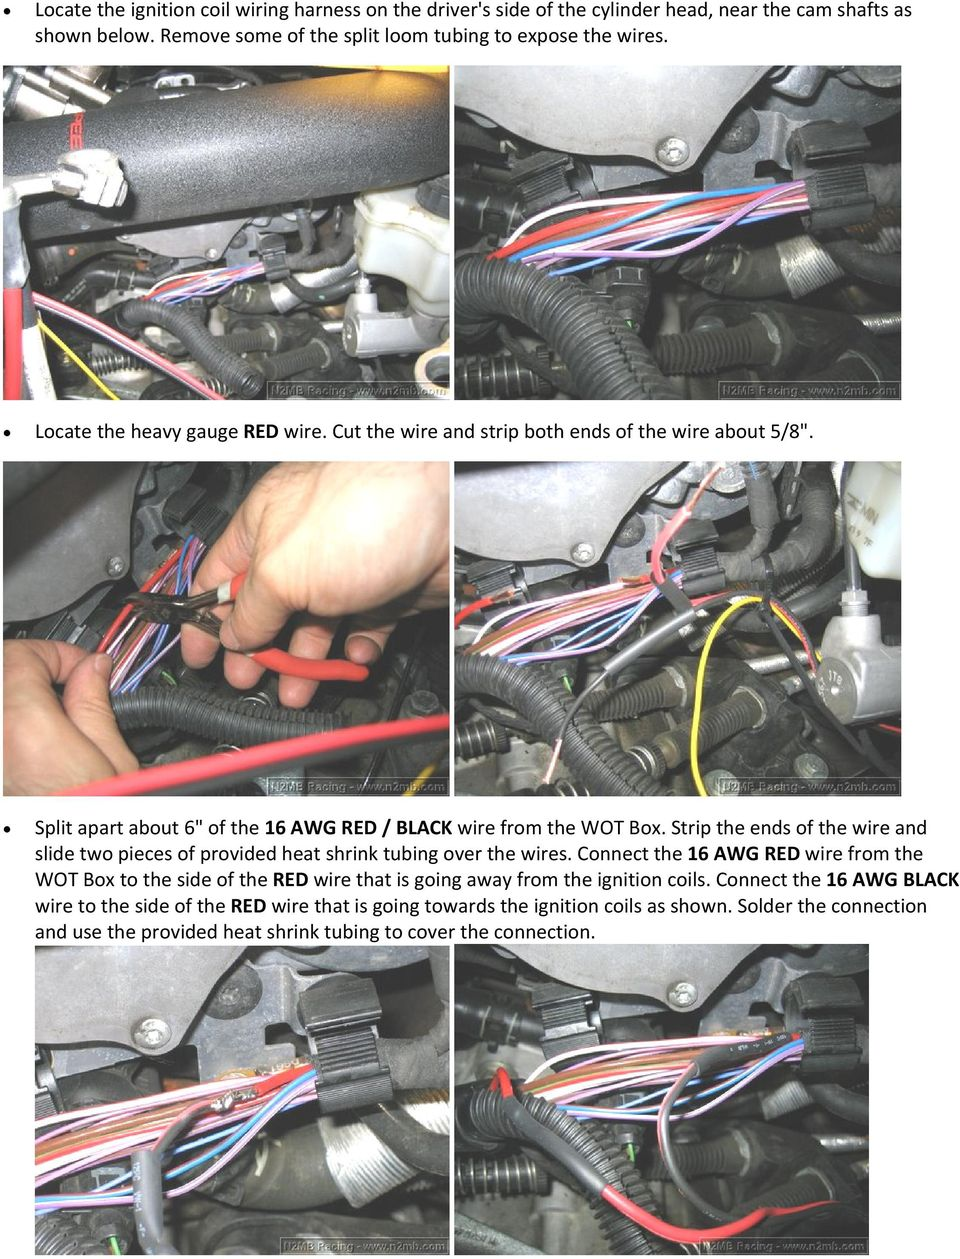 Wot Box Installation Instructions Vw Gti Mkv 20t Pdf Wiring Diagram For Nissan 350z Strip The Ends Of Wire And Slide Two Pieces Provided Heat Shrink Tubing Over